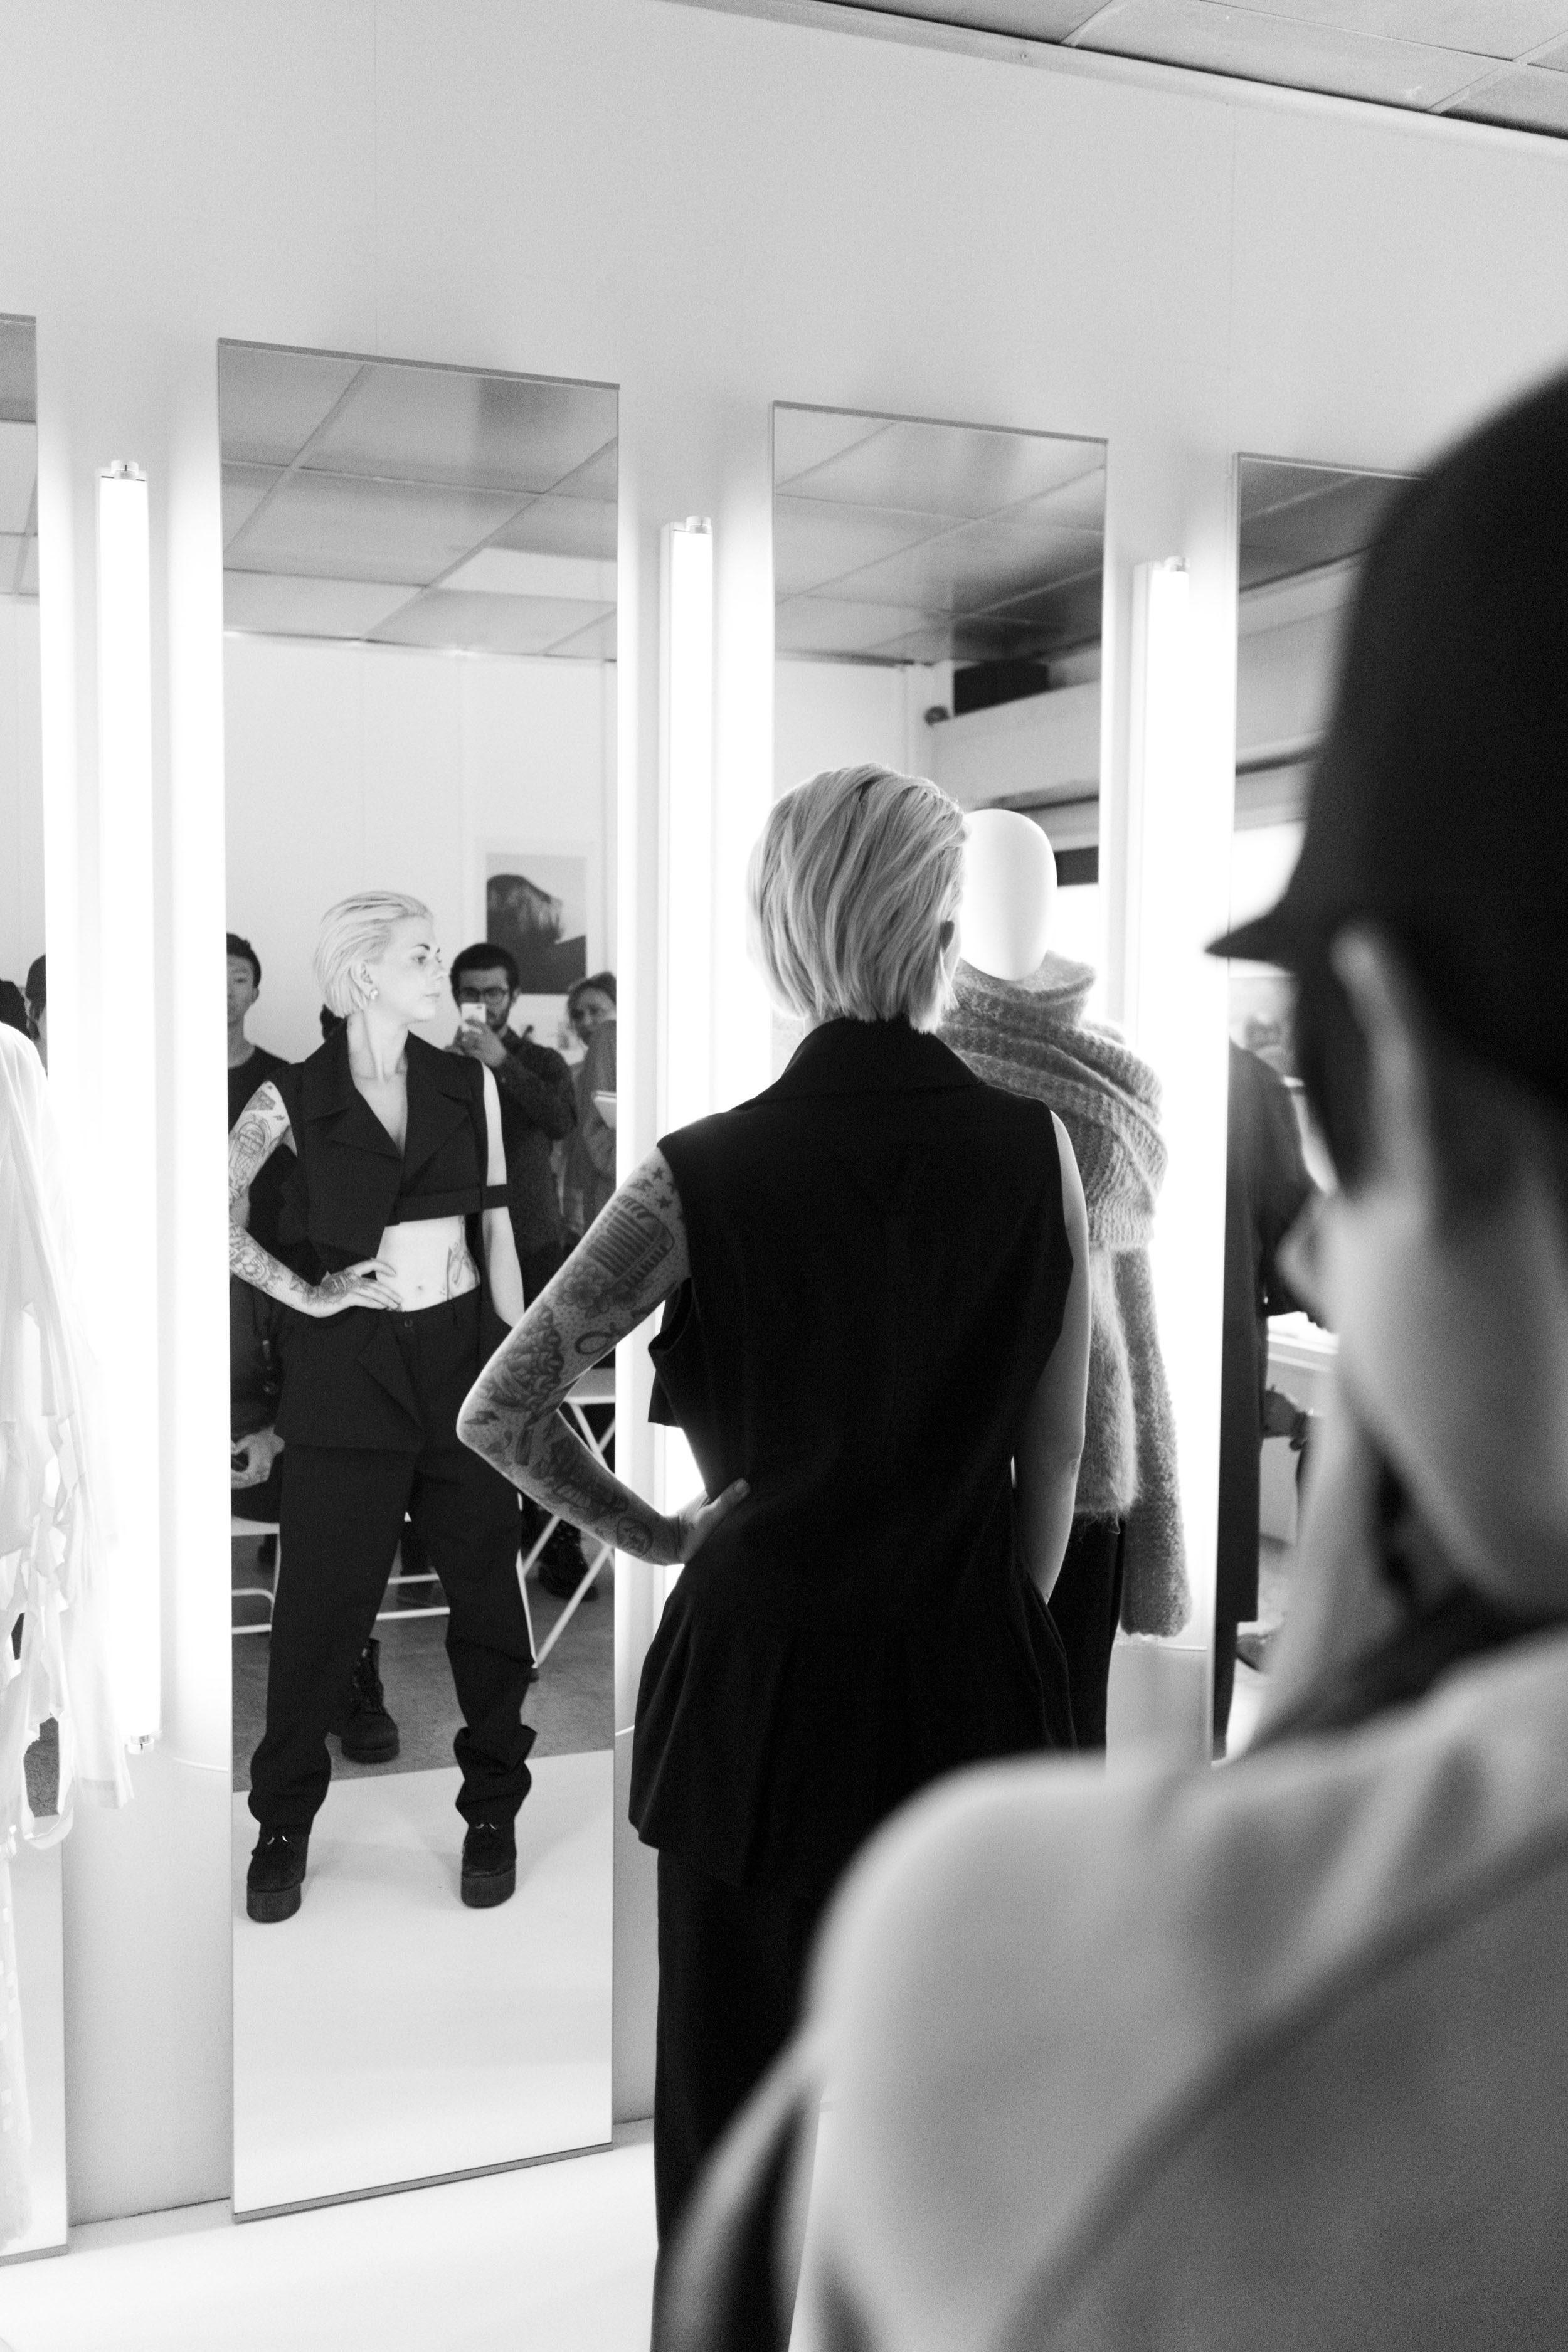 IHEARTALICE – Fashion & Travel Blog by Alice M. Huynh: London Travel Diary – Yohji Yamamoto Showspace